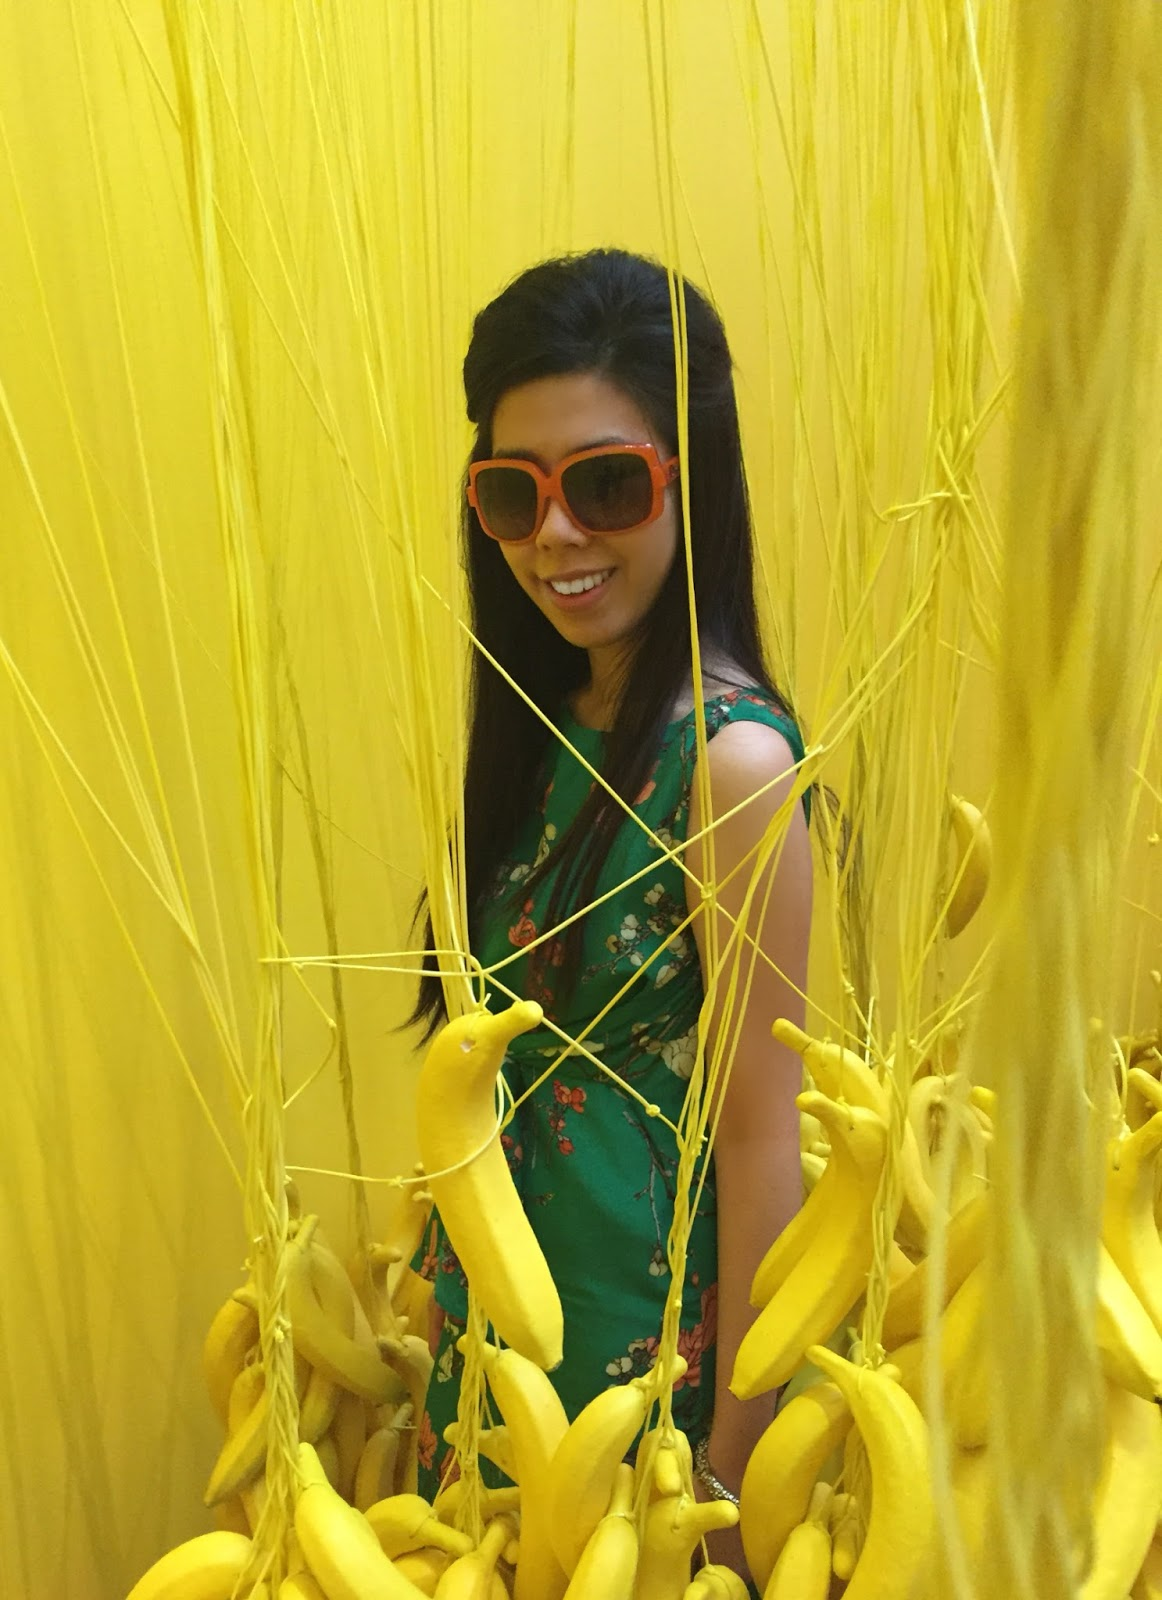 Adrienne Nguyen_Invictus_Yellow Banana Room at the Museum of Ice Cream Los Angeles